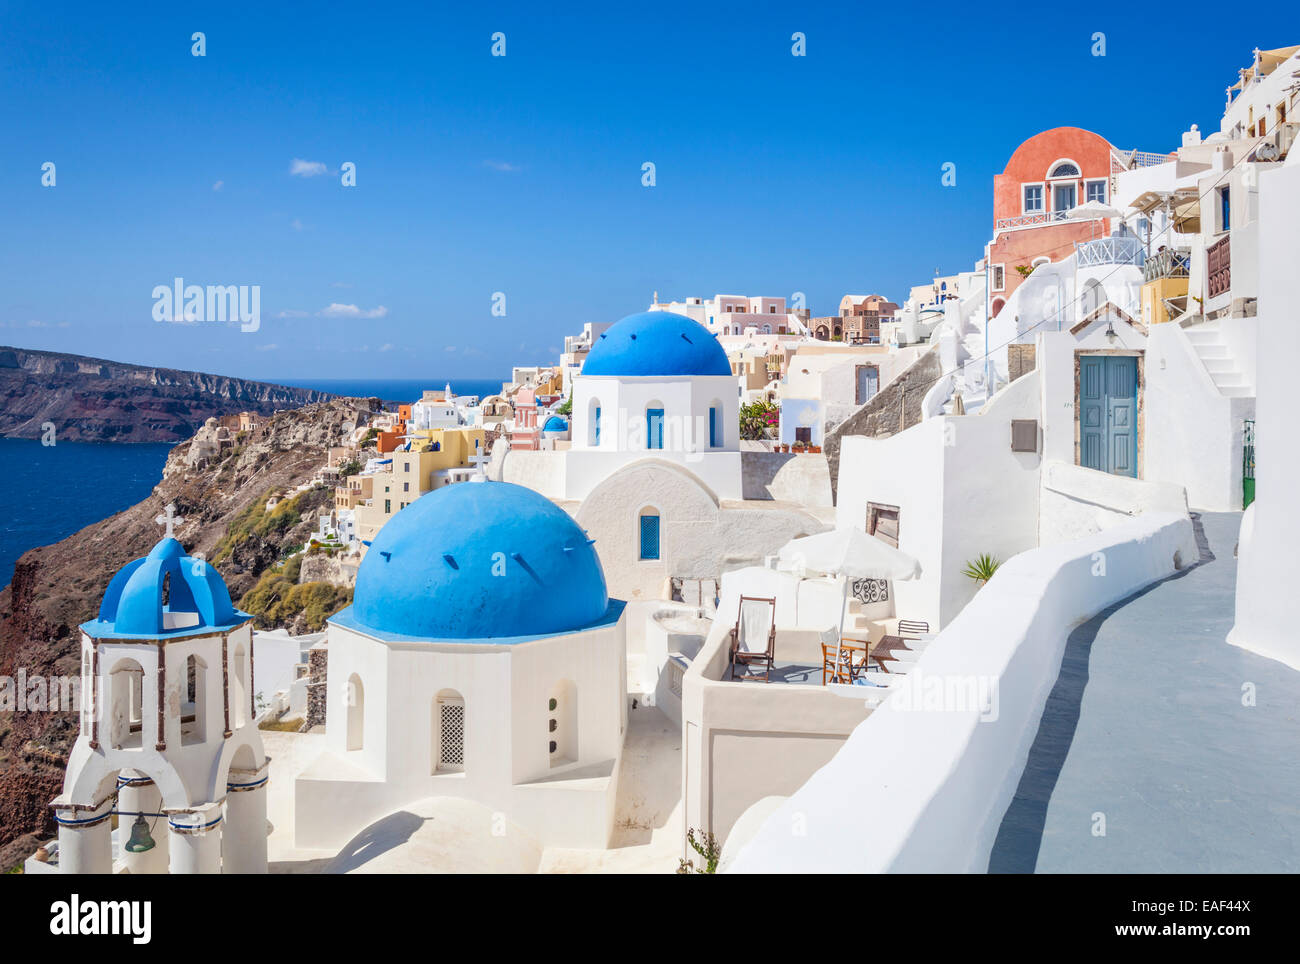 white houses and blue domes in the village of oia